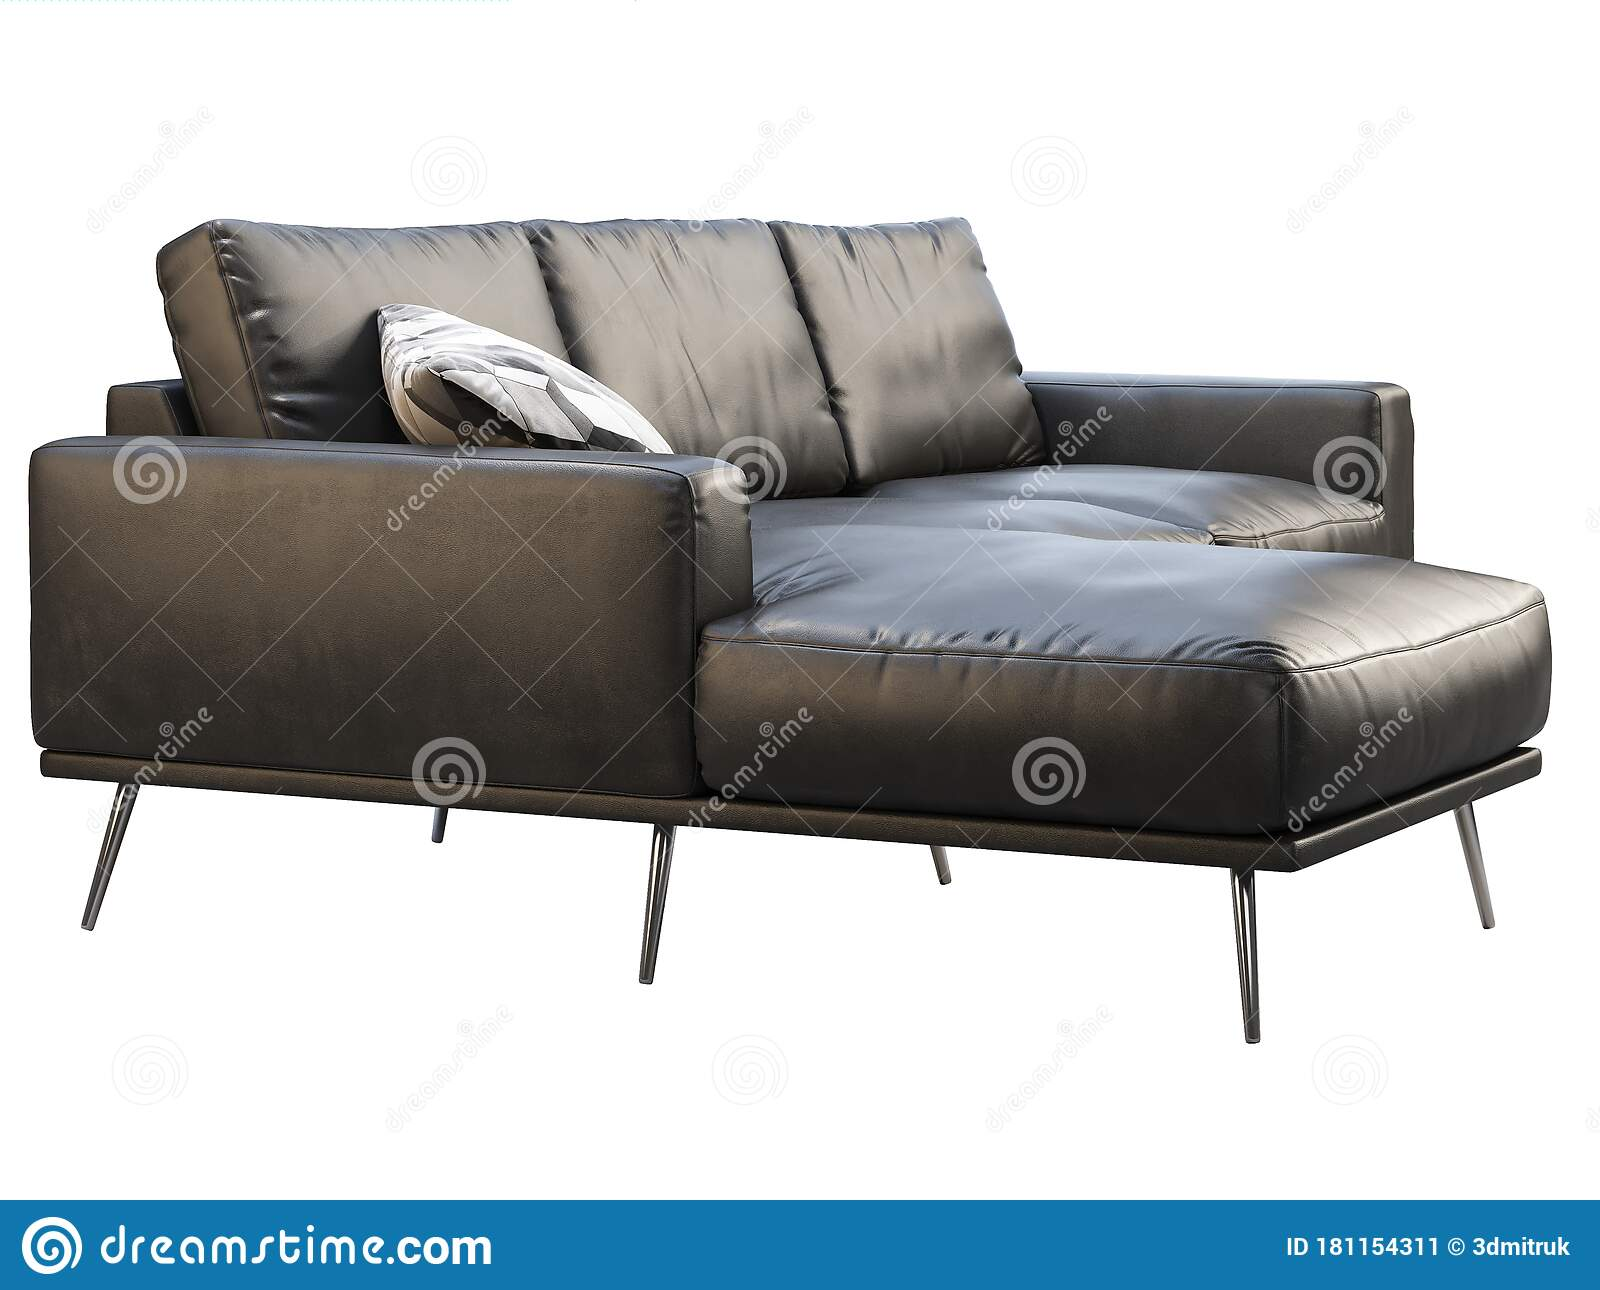 Modern Black Leather Chaise Lounge Sofa With Pillow 3d Render Stock Illustration Illustration Of Metal Wrinkles 181154311